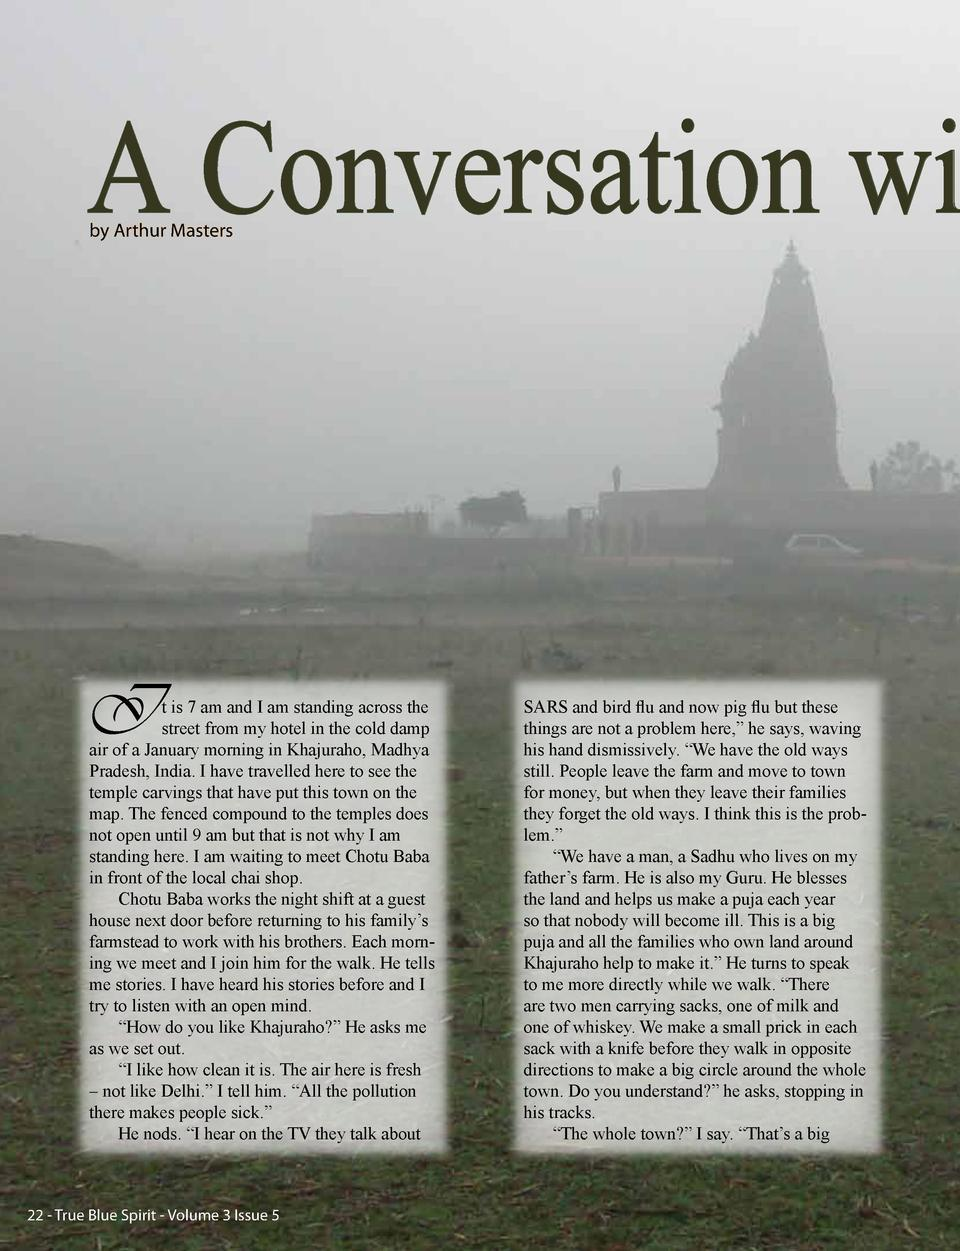 A Conversation wi by Arthur Masters  I  t is 7 am and I am standing across the street from my hotel in the cold damp air o...